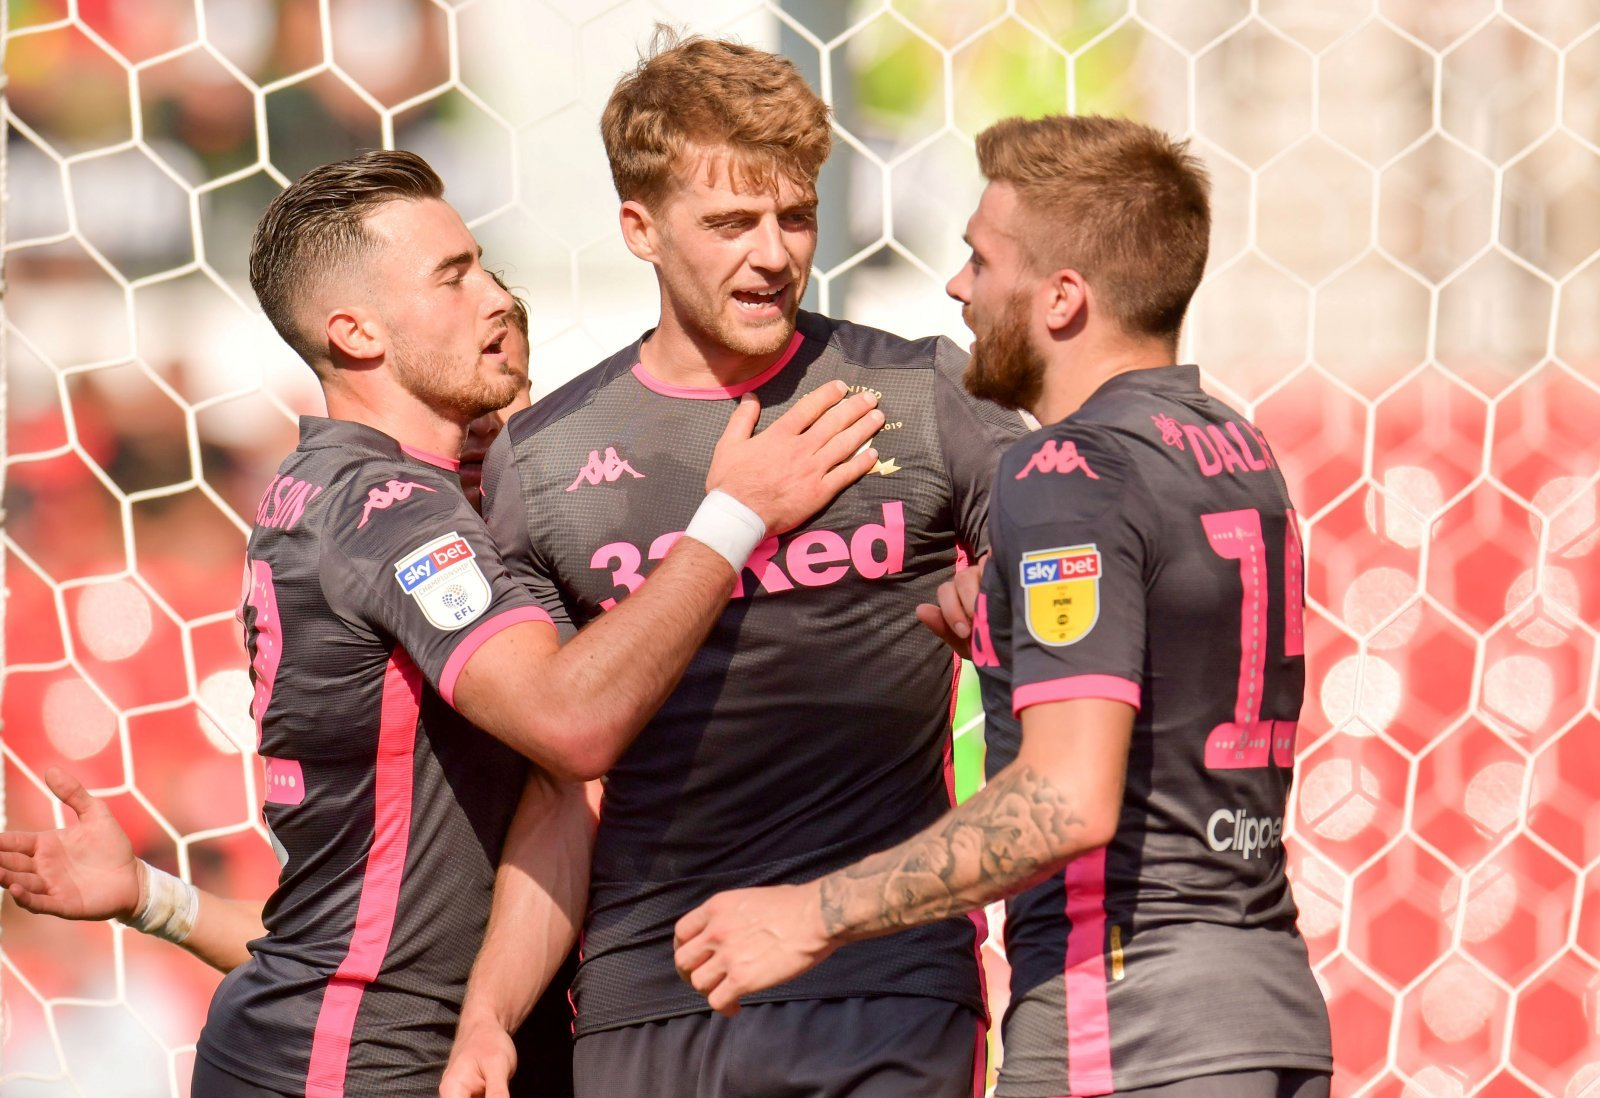 Leeds United: Mills' interesting claim overlooked a key flaw in Bamford's game